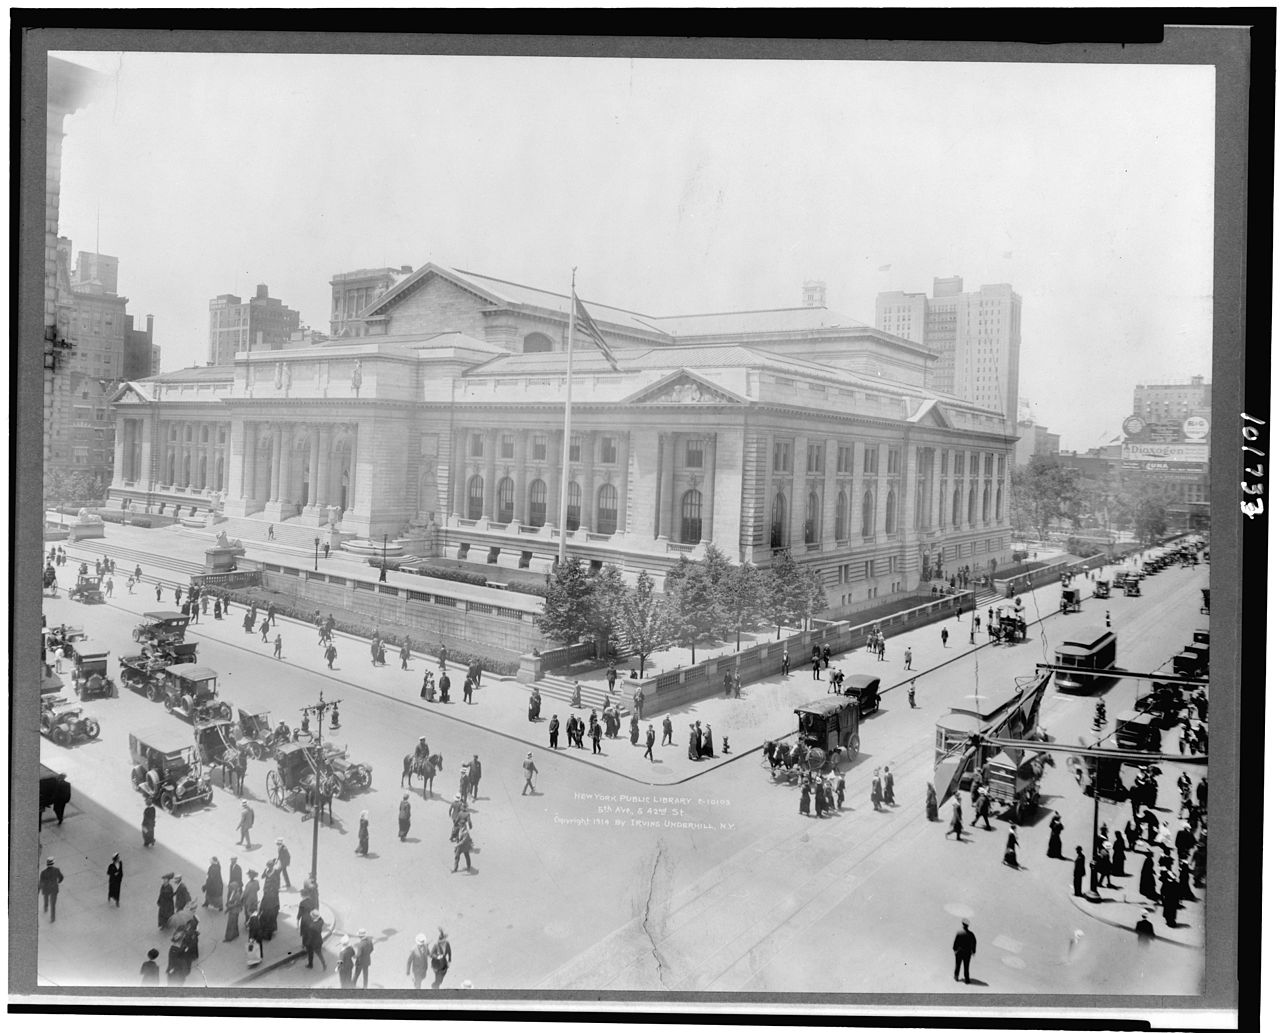 New York Public Library LC-USZ62-101733.jpg